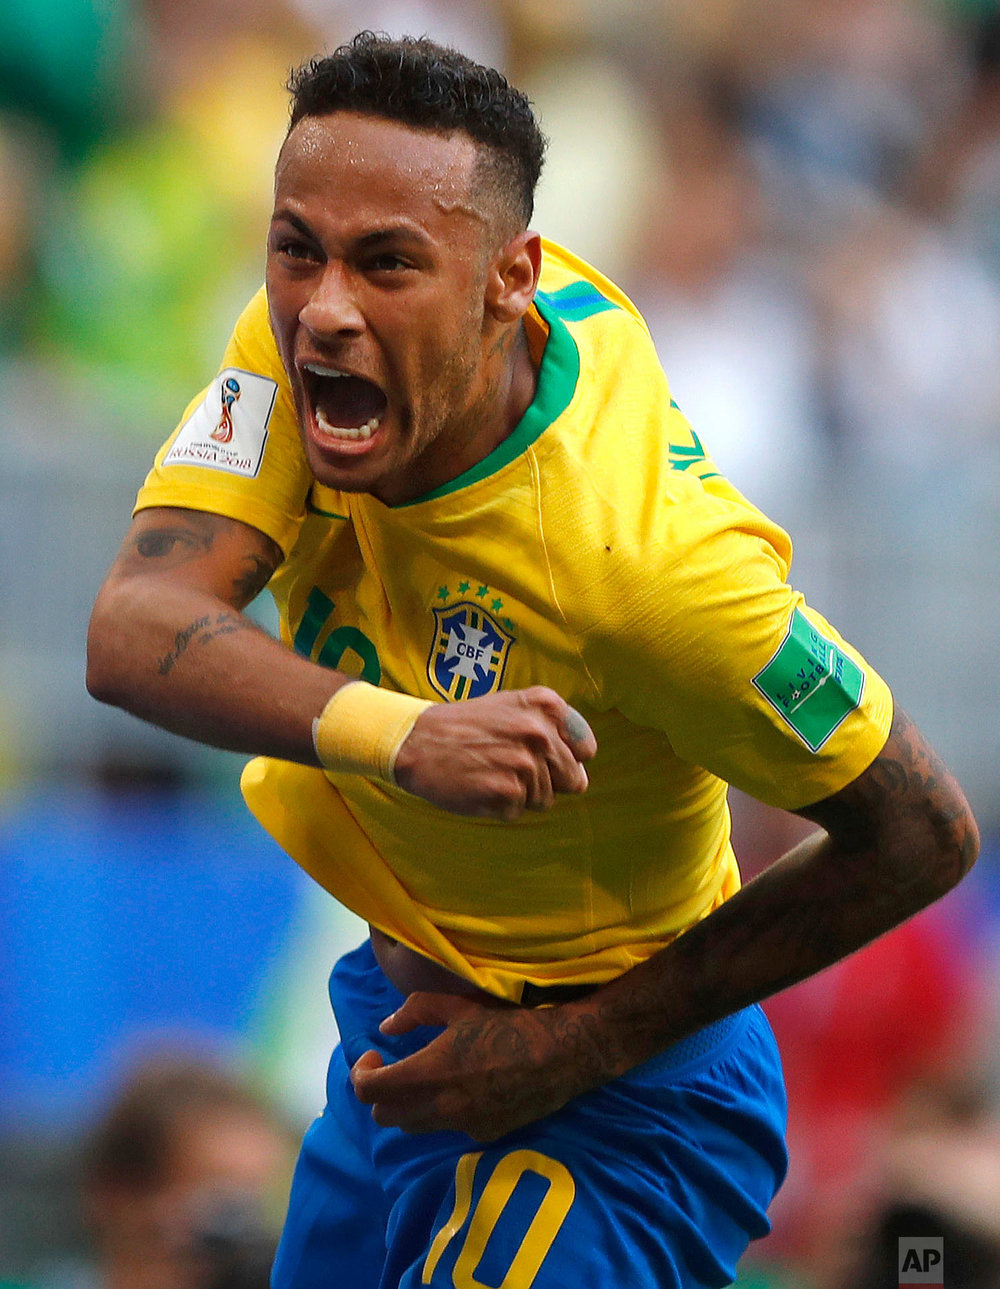 Brazil's Neymar celebrates after scoring his side's opening goal during the round of 16 match between Brazil and Mexico at the 2018 soccer World Cup in the Samara Arena, in Samara, Russia on July 2, 2018. (AP Photo/Frank Augstein)